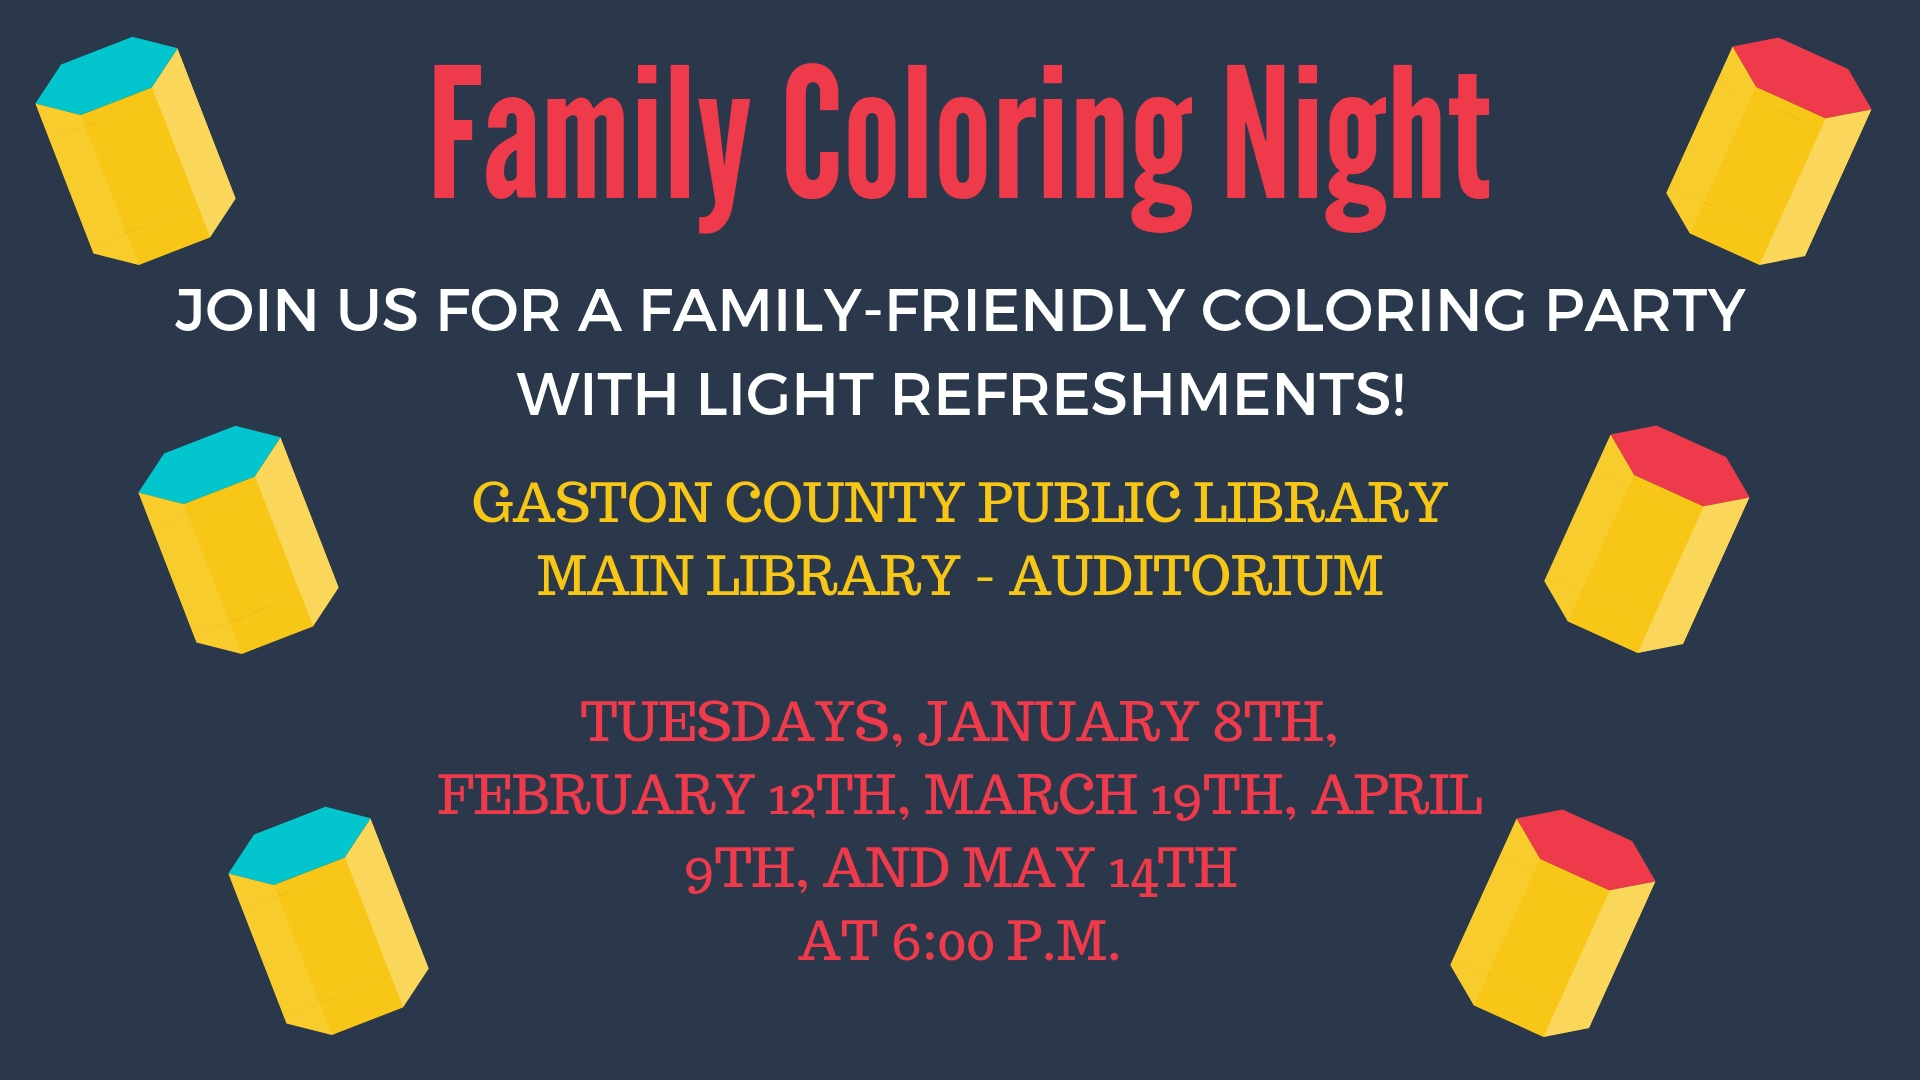 Family Coloring Night